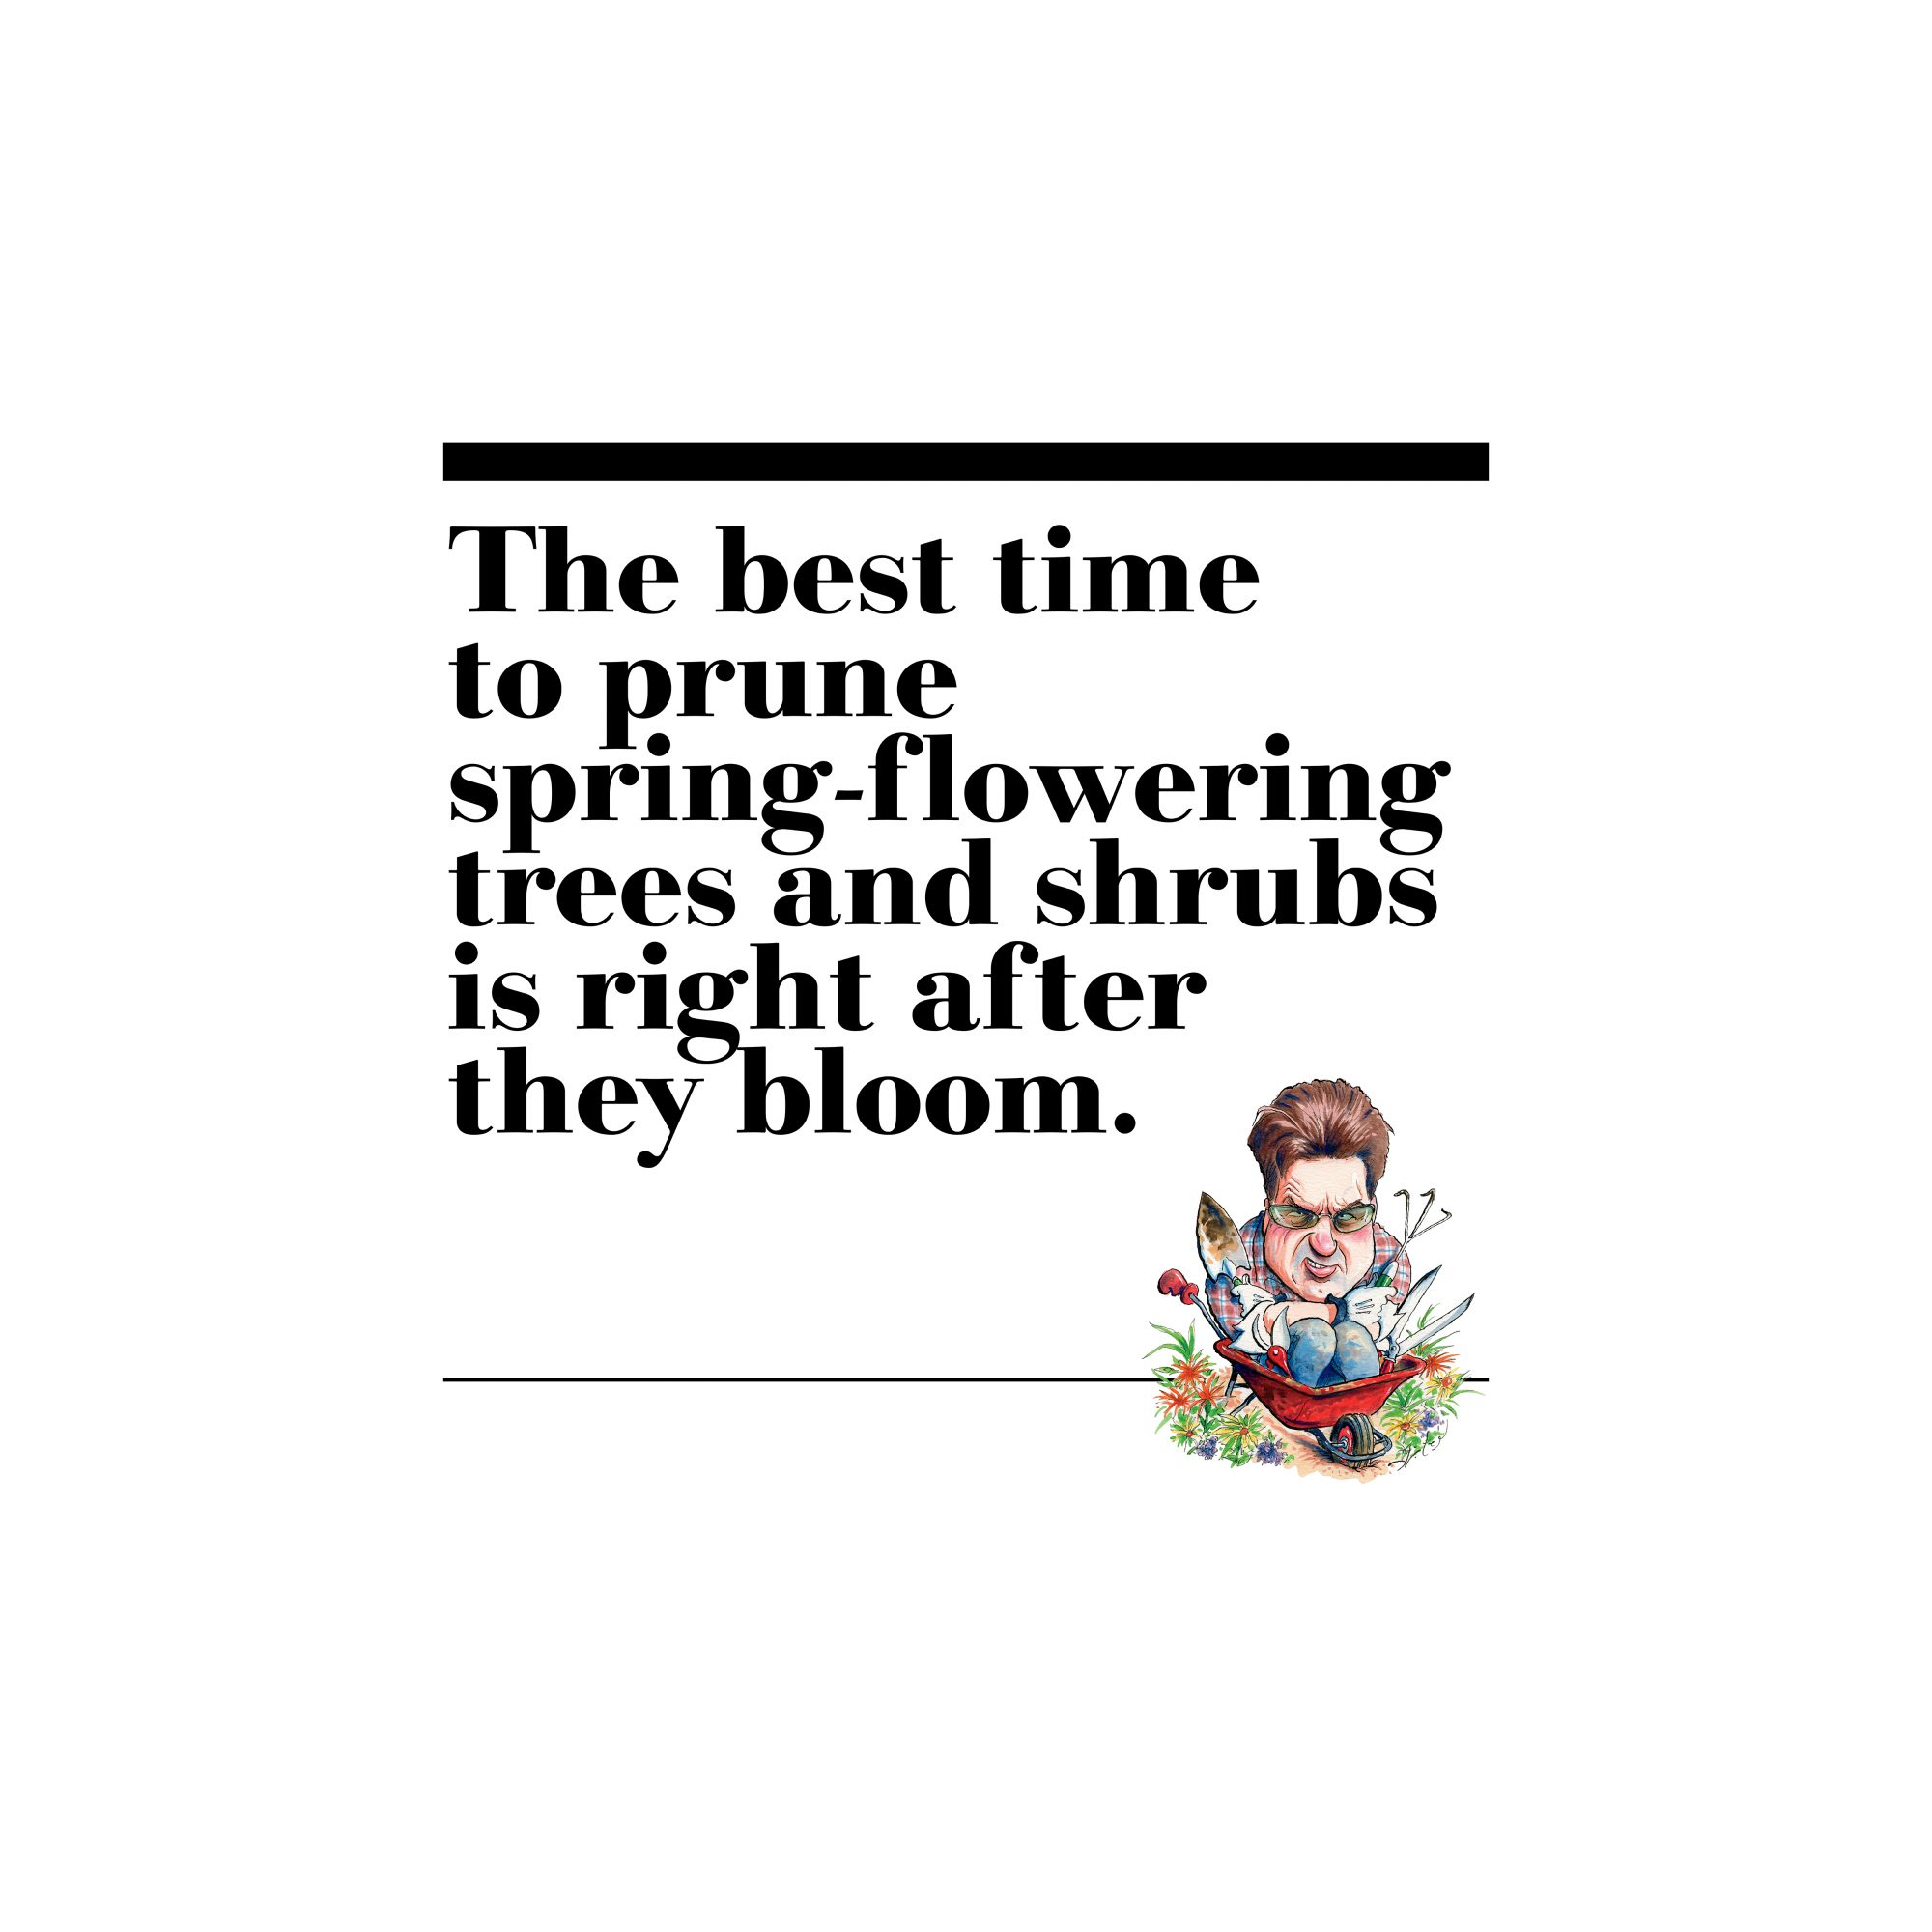 3. The best time to prune spring-flowering trees and shrubs is right after they bloom.